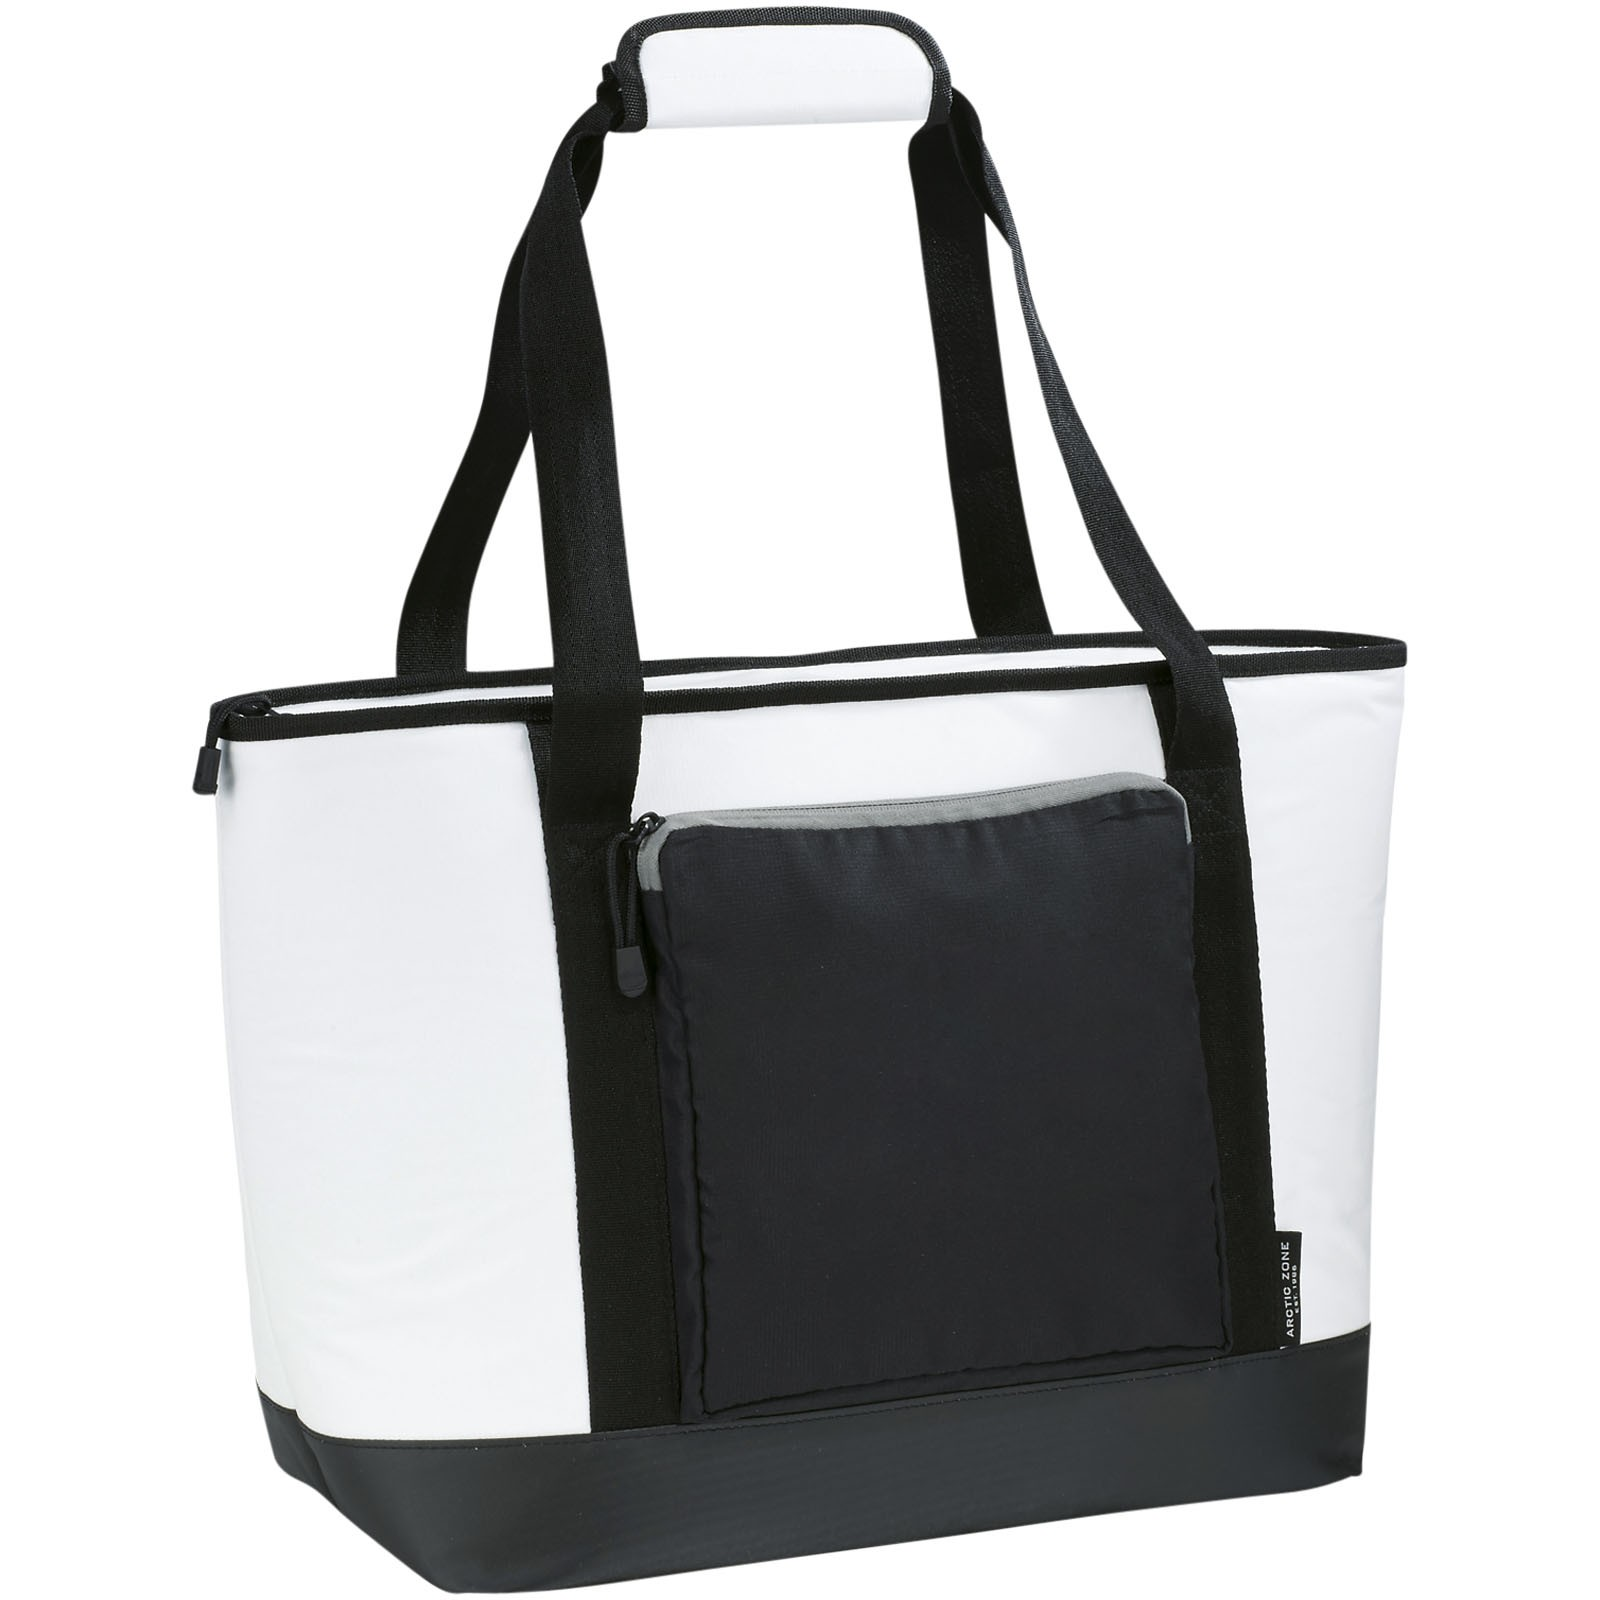 Titan 3-day ThermaFlect® cooler bag - White